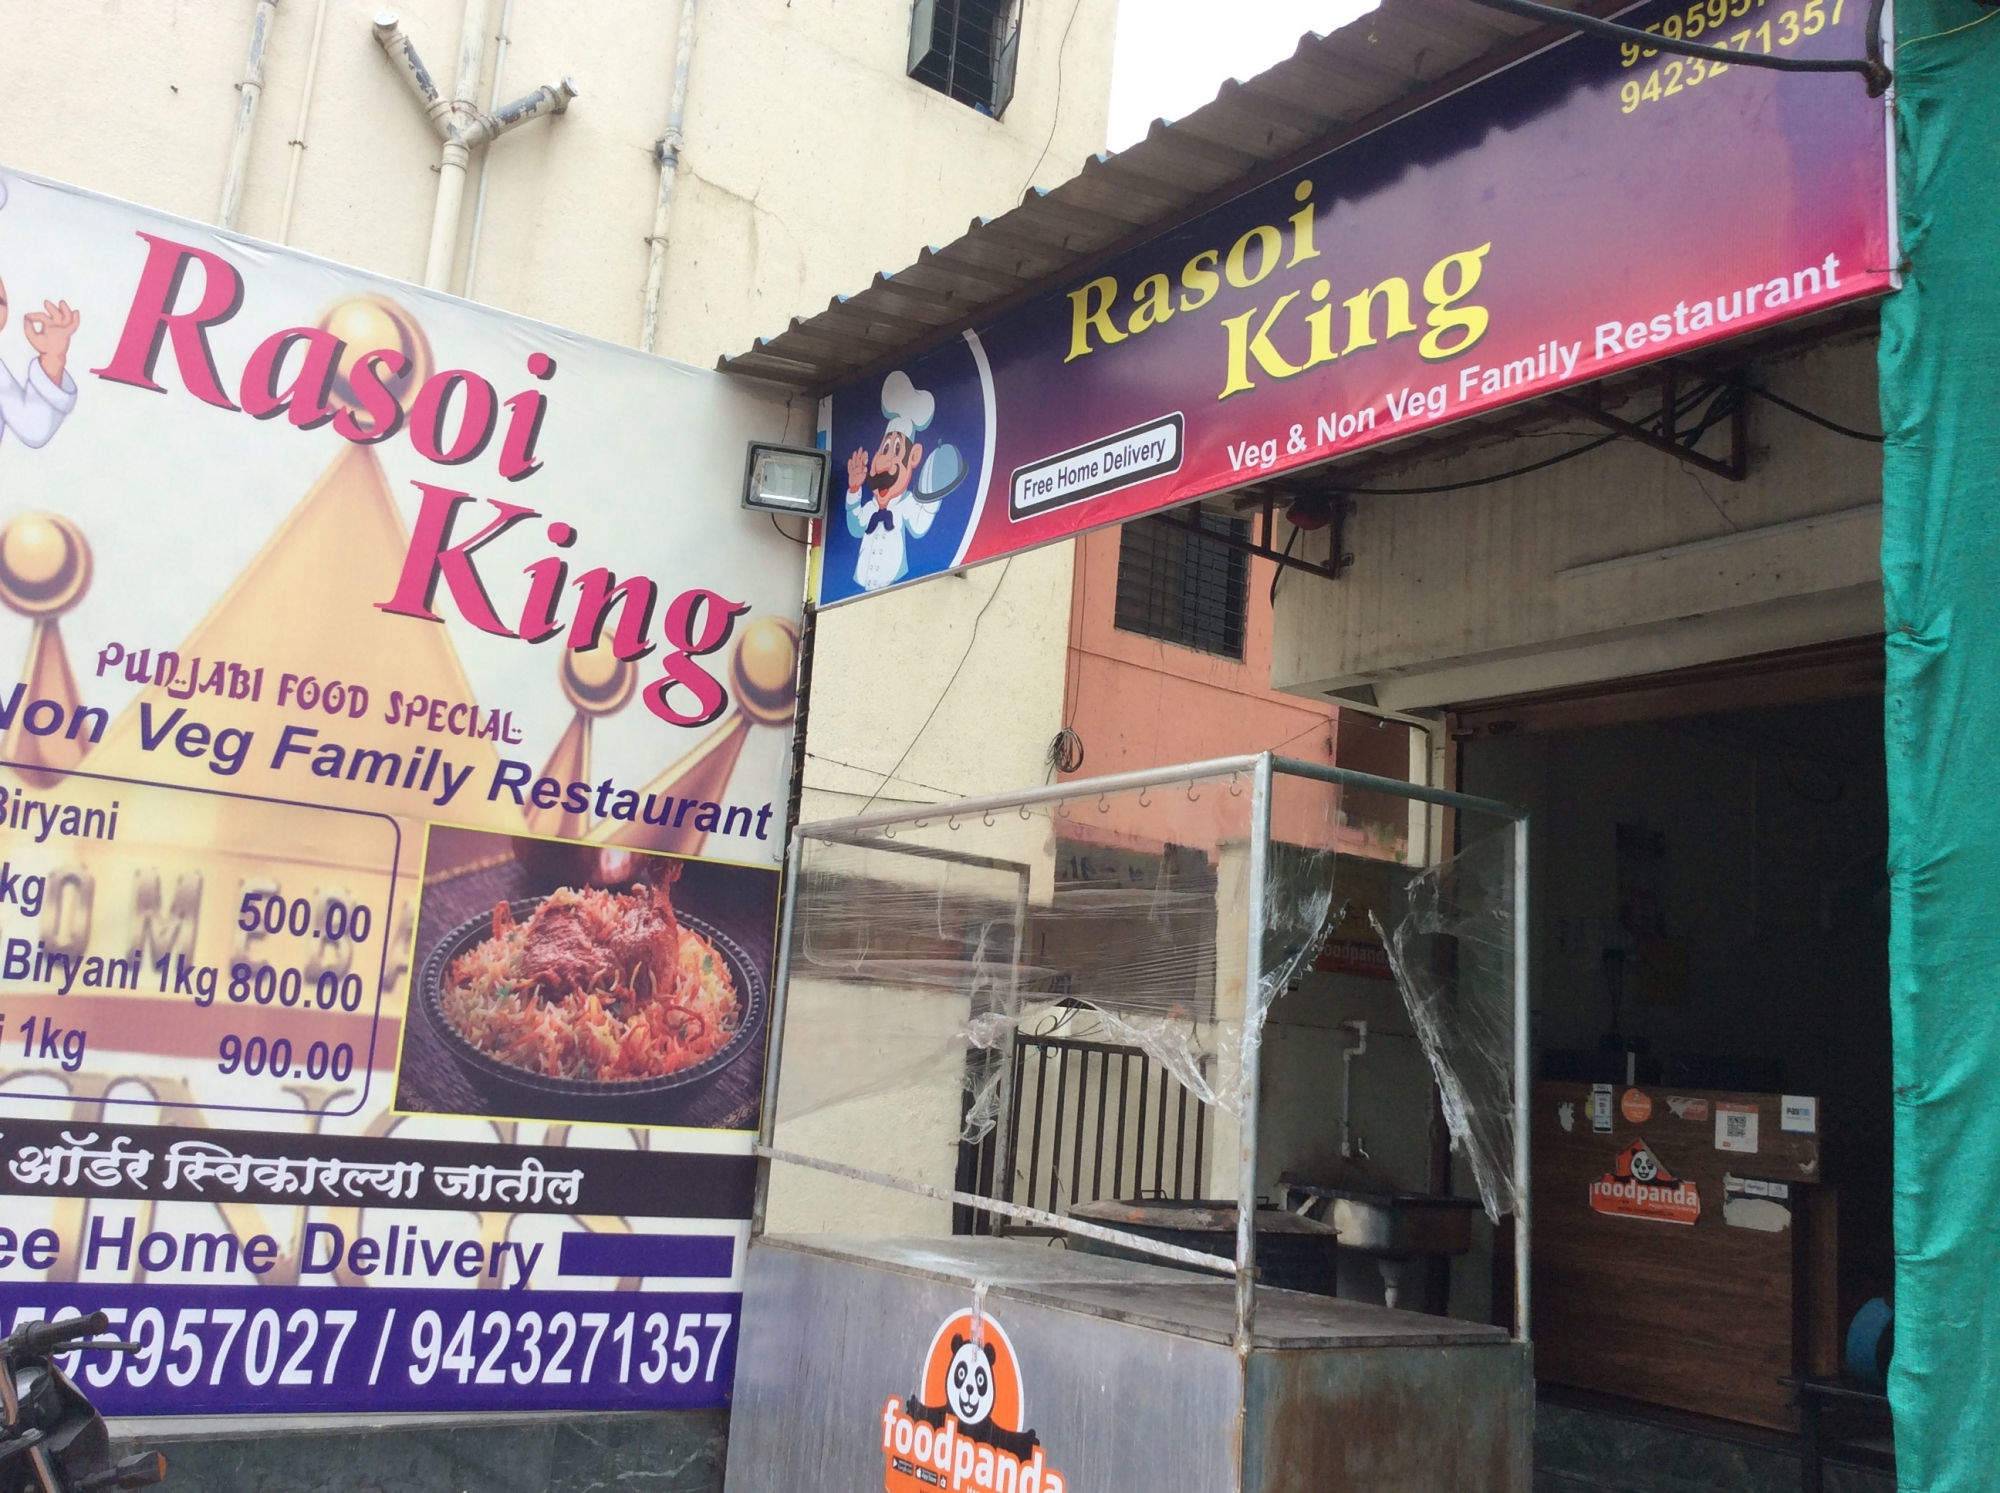 Tiffin Services For Kerala Food Pune